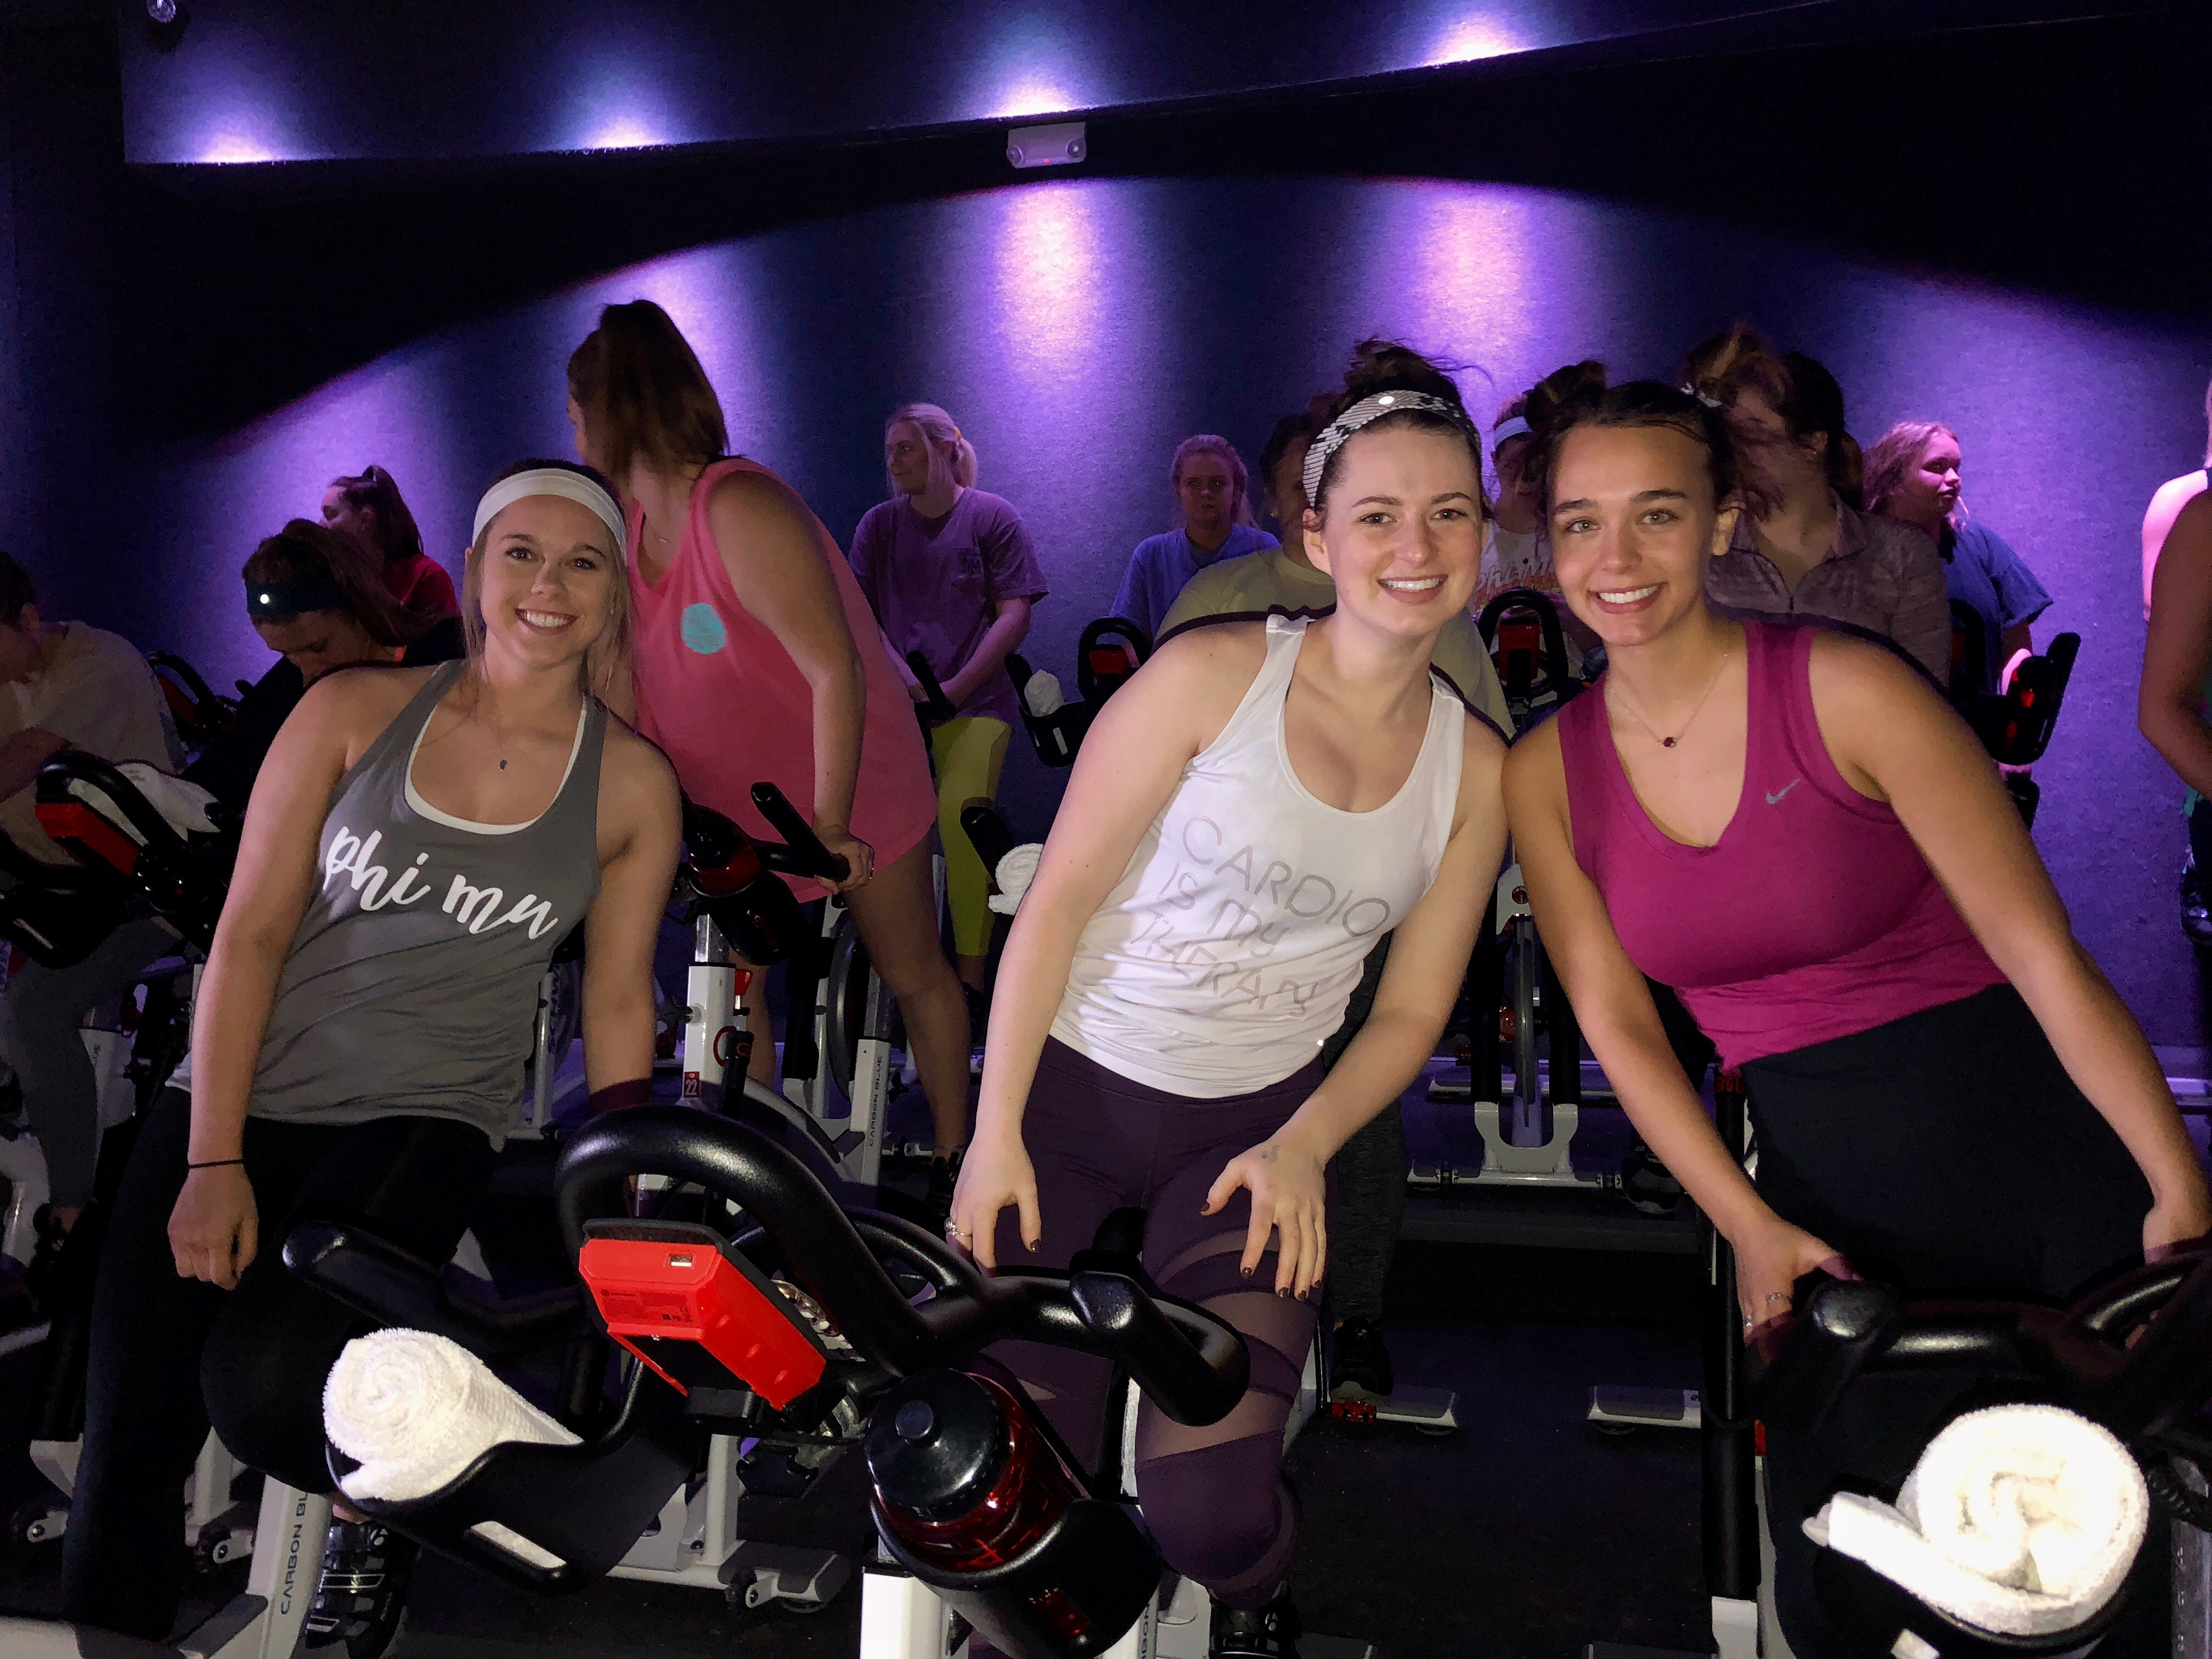 Sisterhood at Cyclebar!